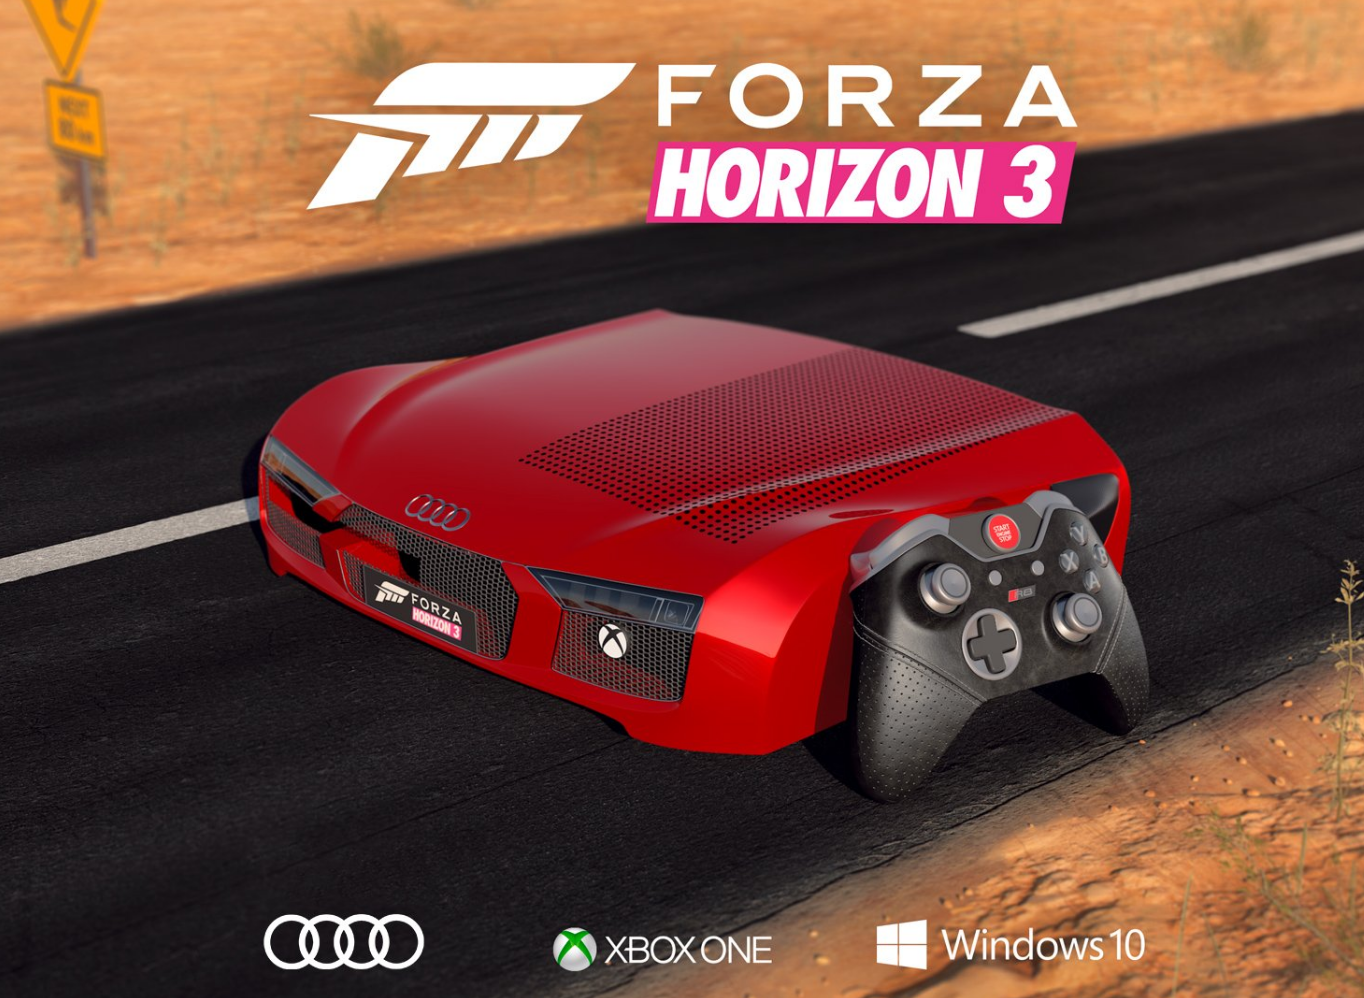 une xbox one s collector pour forza horizon 3 joypad. Black Bedroom Furniture Sets. Home Design Ideas